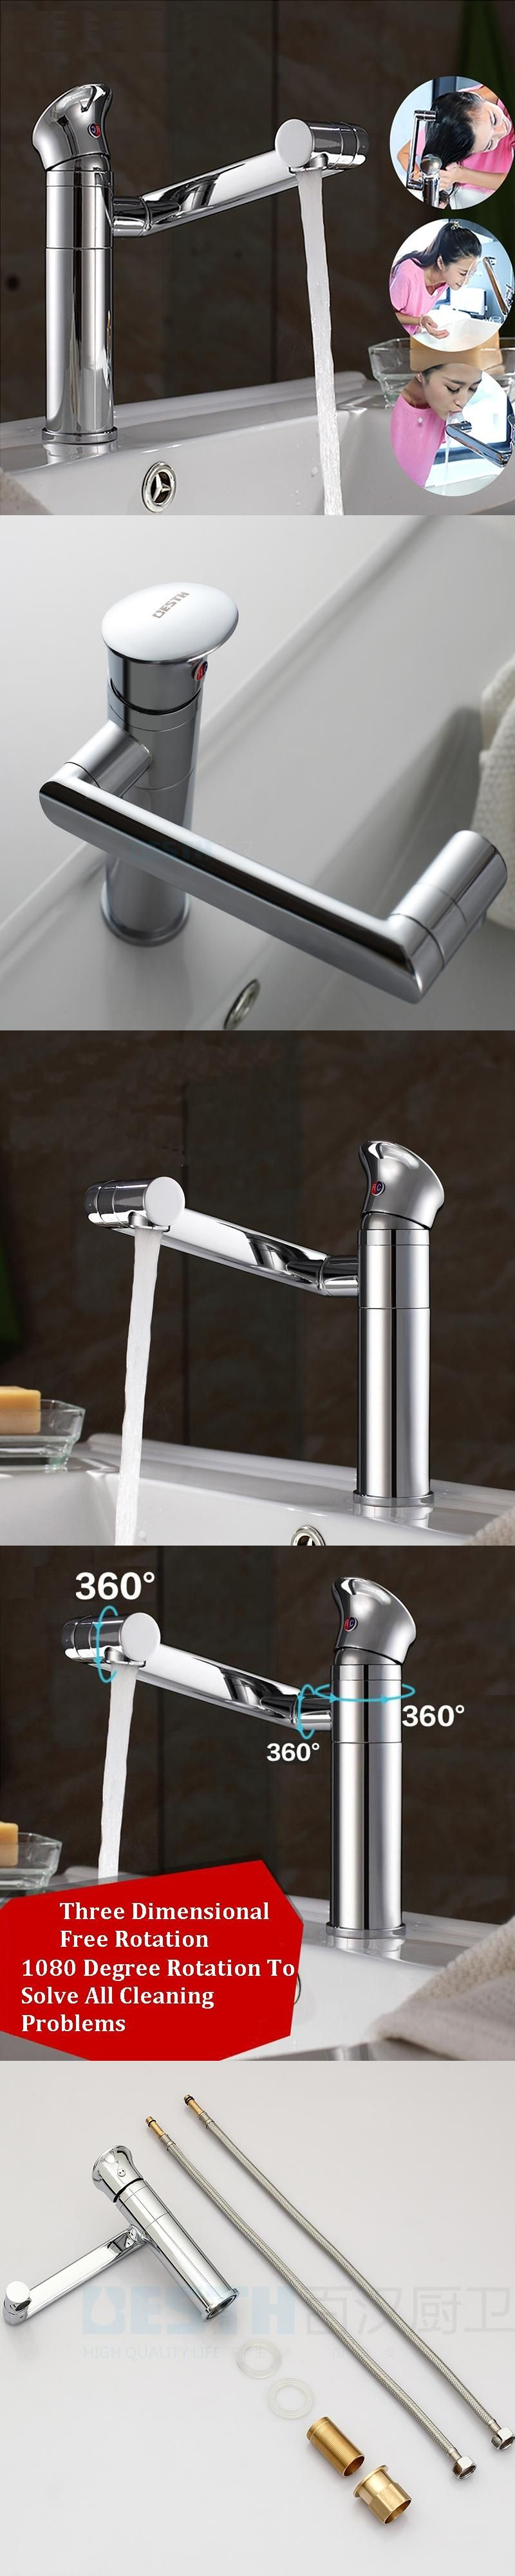 jooe Bathroom Sink Faucet Mixer Tap Swivel Easy Wash for Basin Sink ...